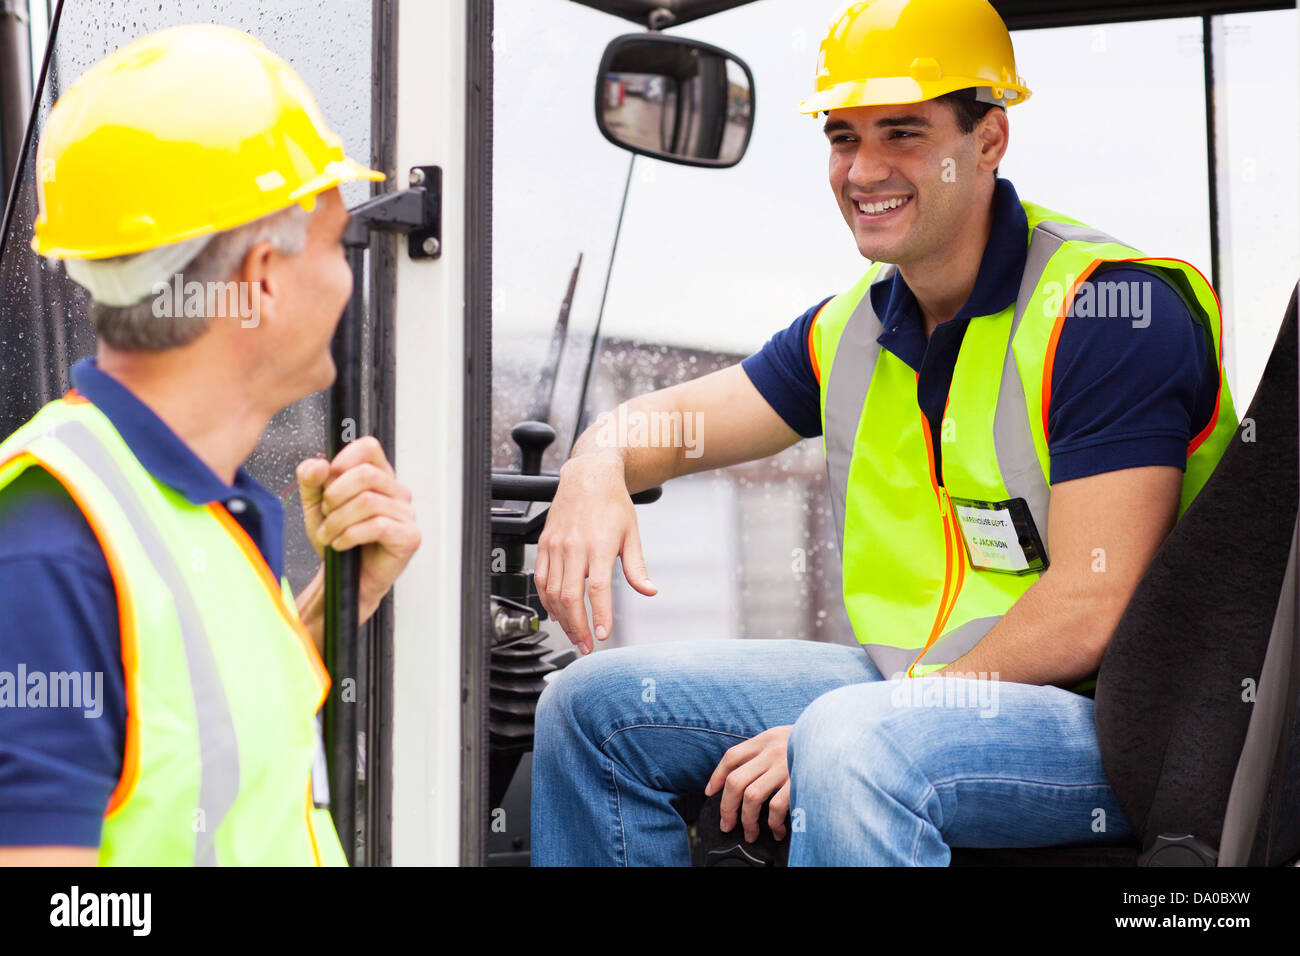 warehouse co-workers chatting during break on forklift - Stock Image